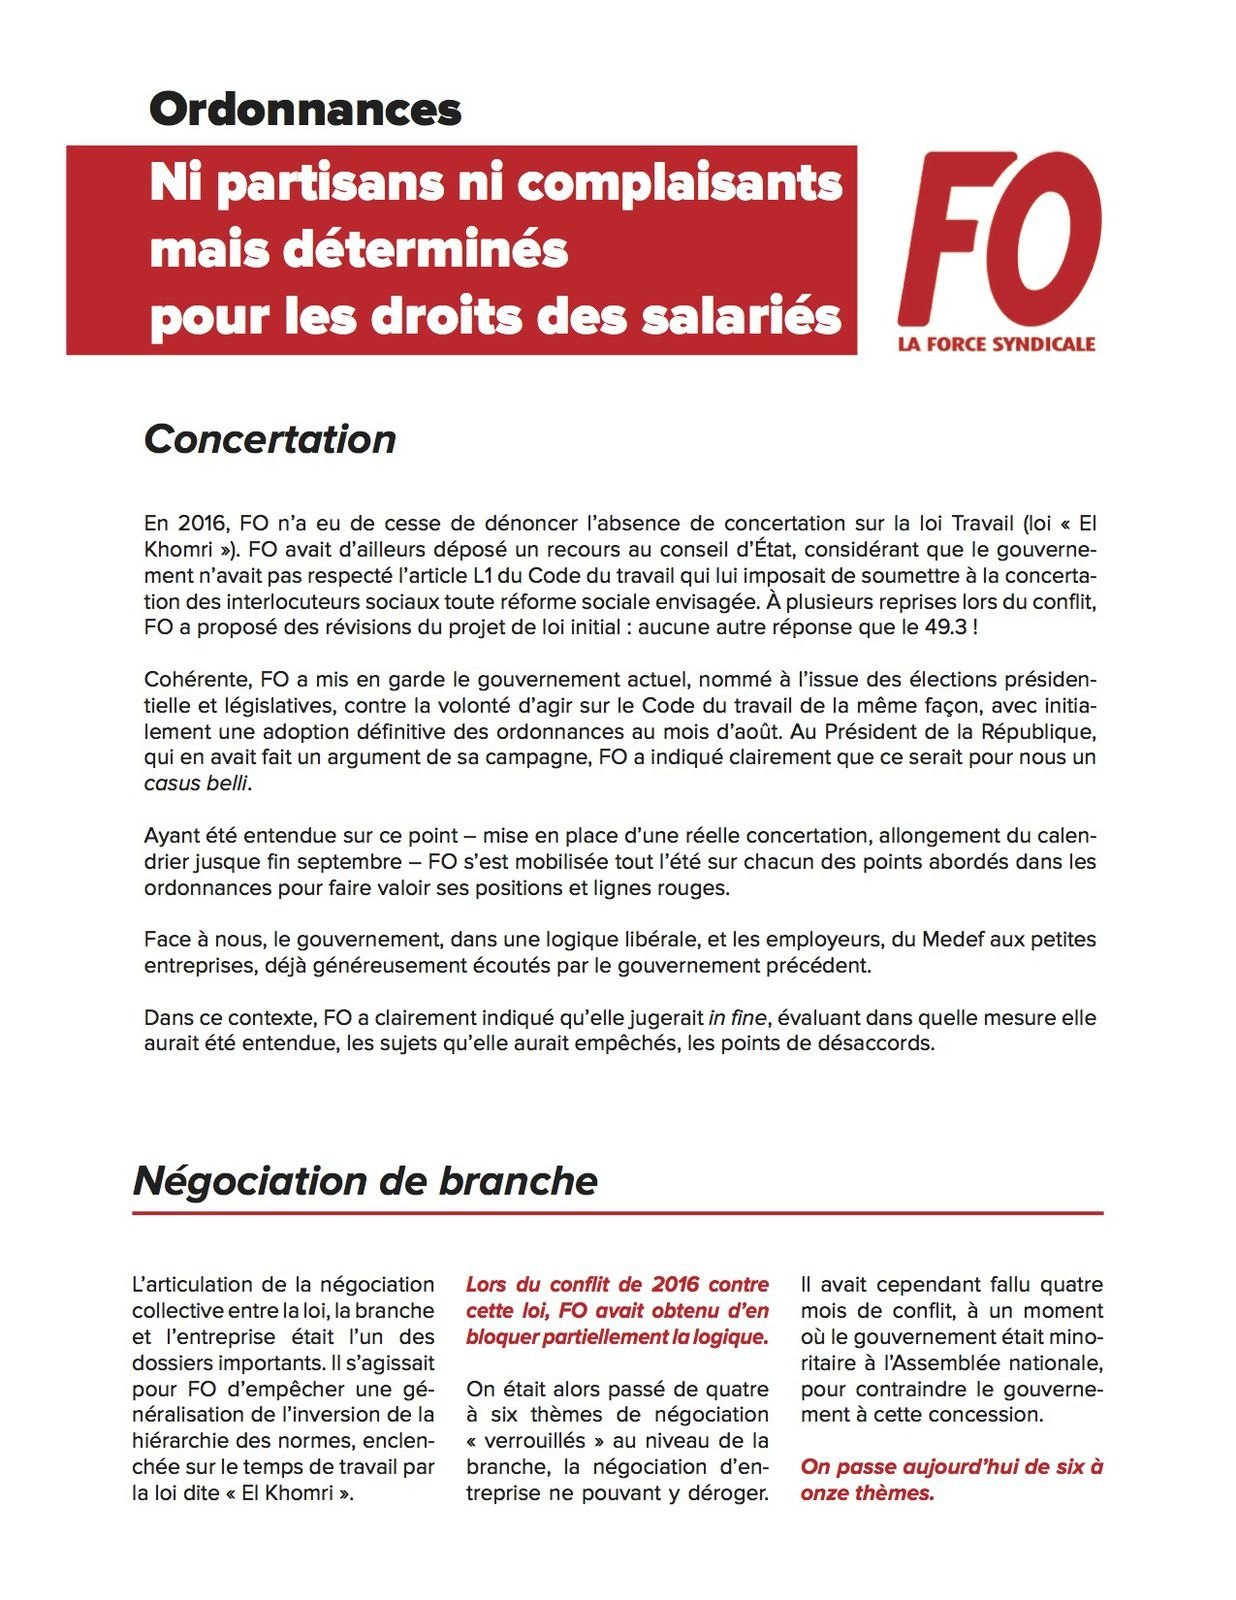 Mobilisation interprofessionnelle le 16 novembre 2017